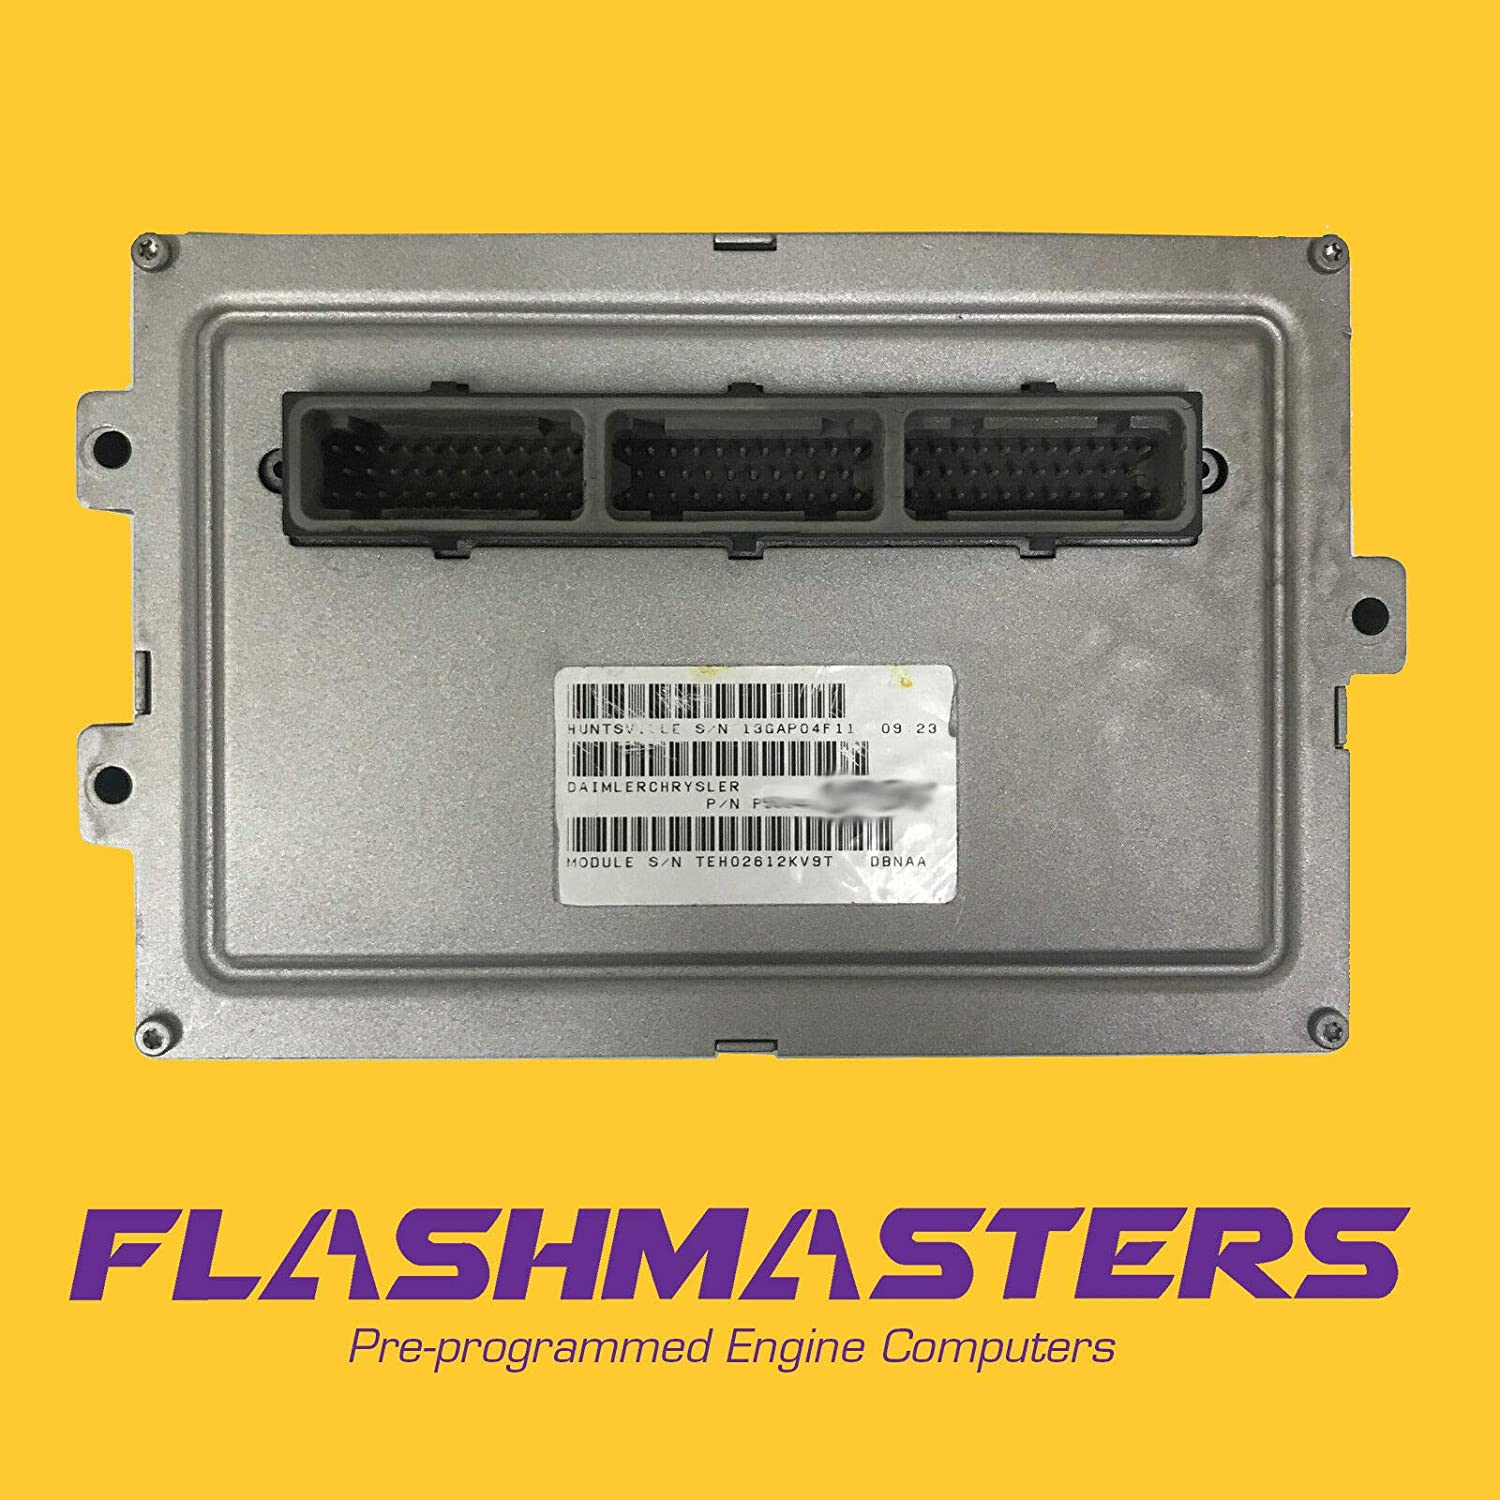 Flashmasters 1999 Compatible At the price with quality assurance 5.2L Dodge EC Truck